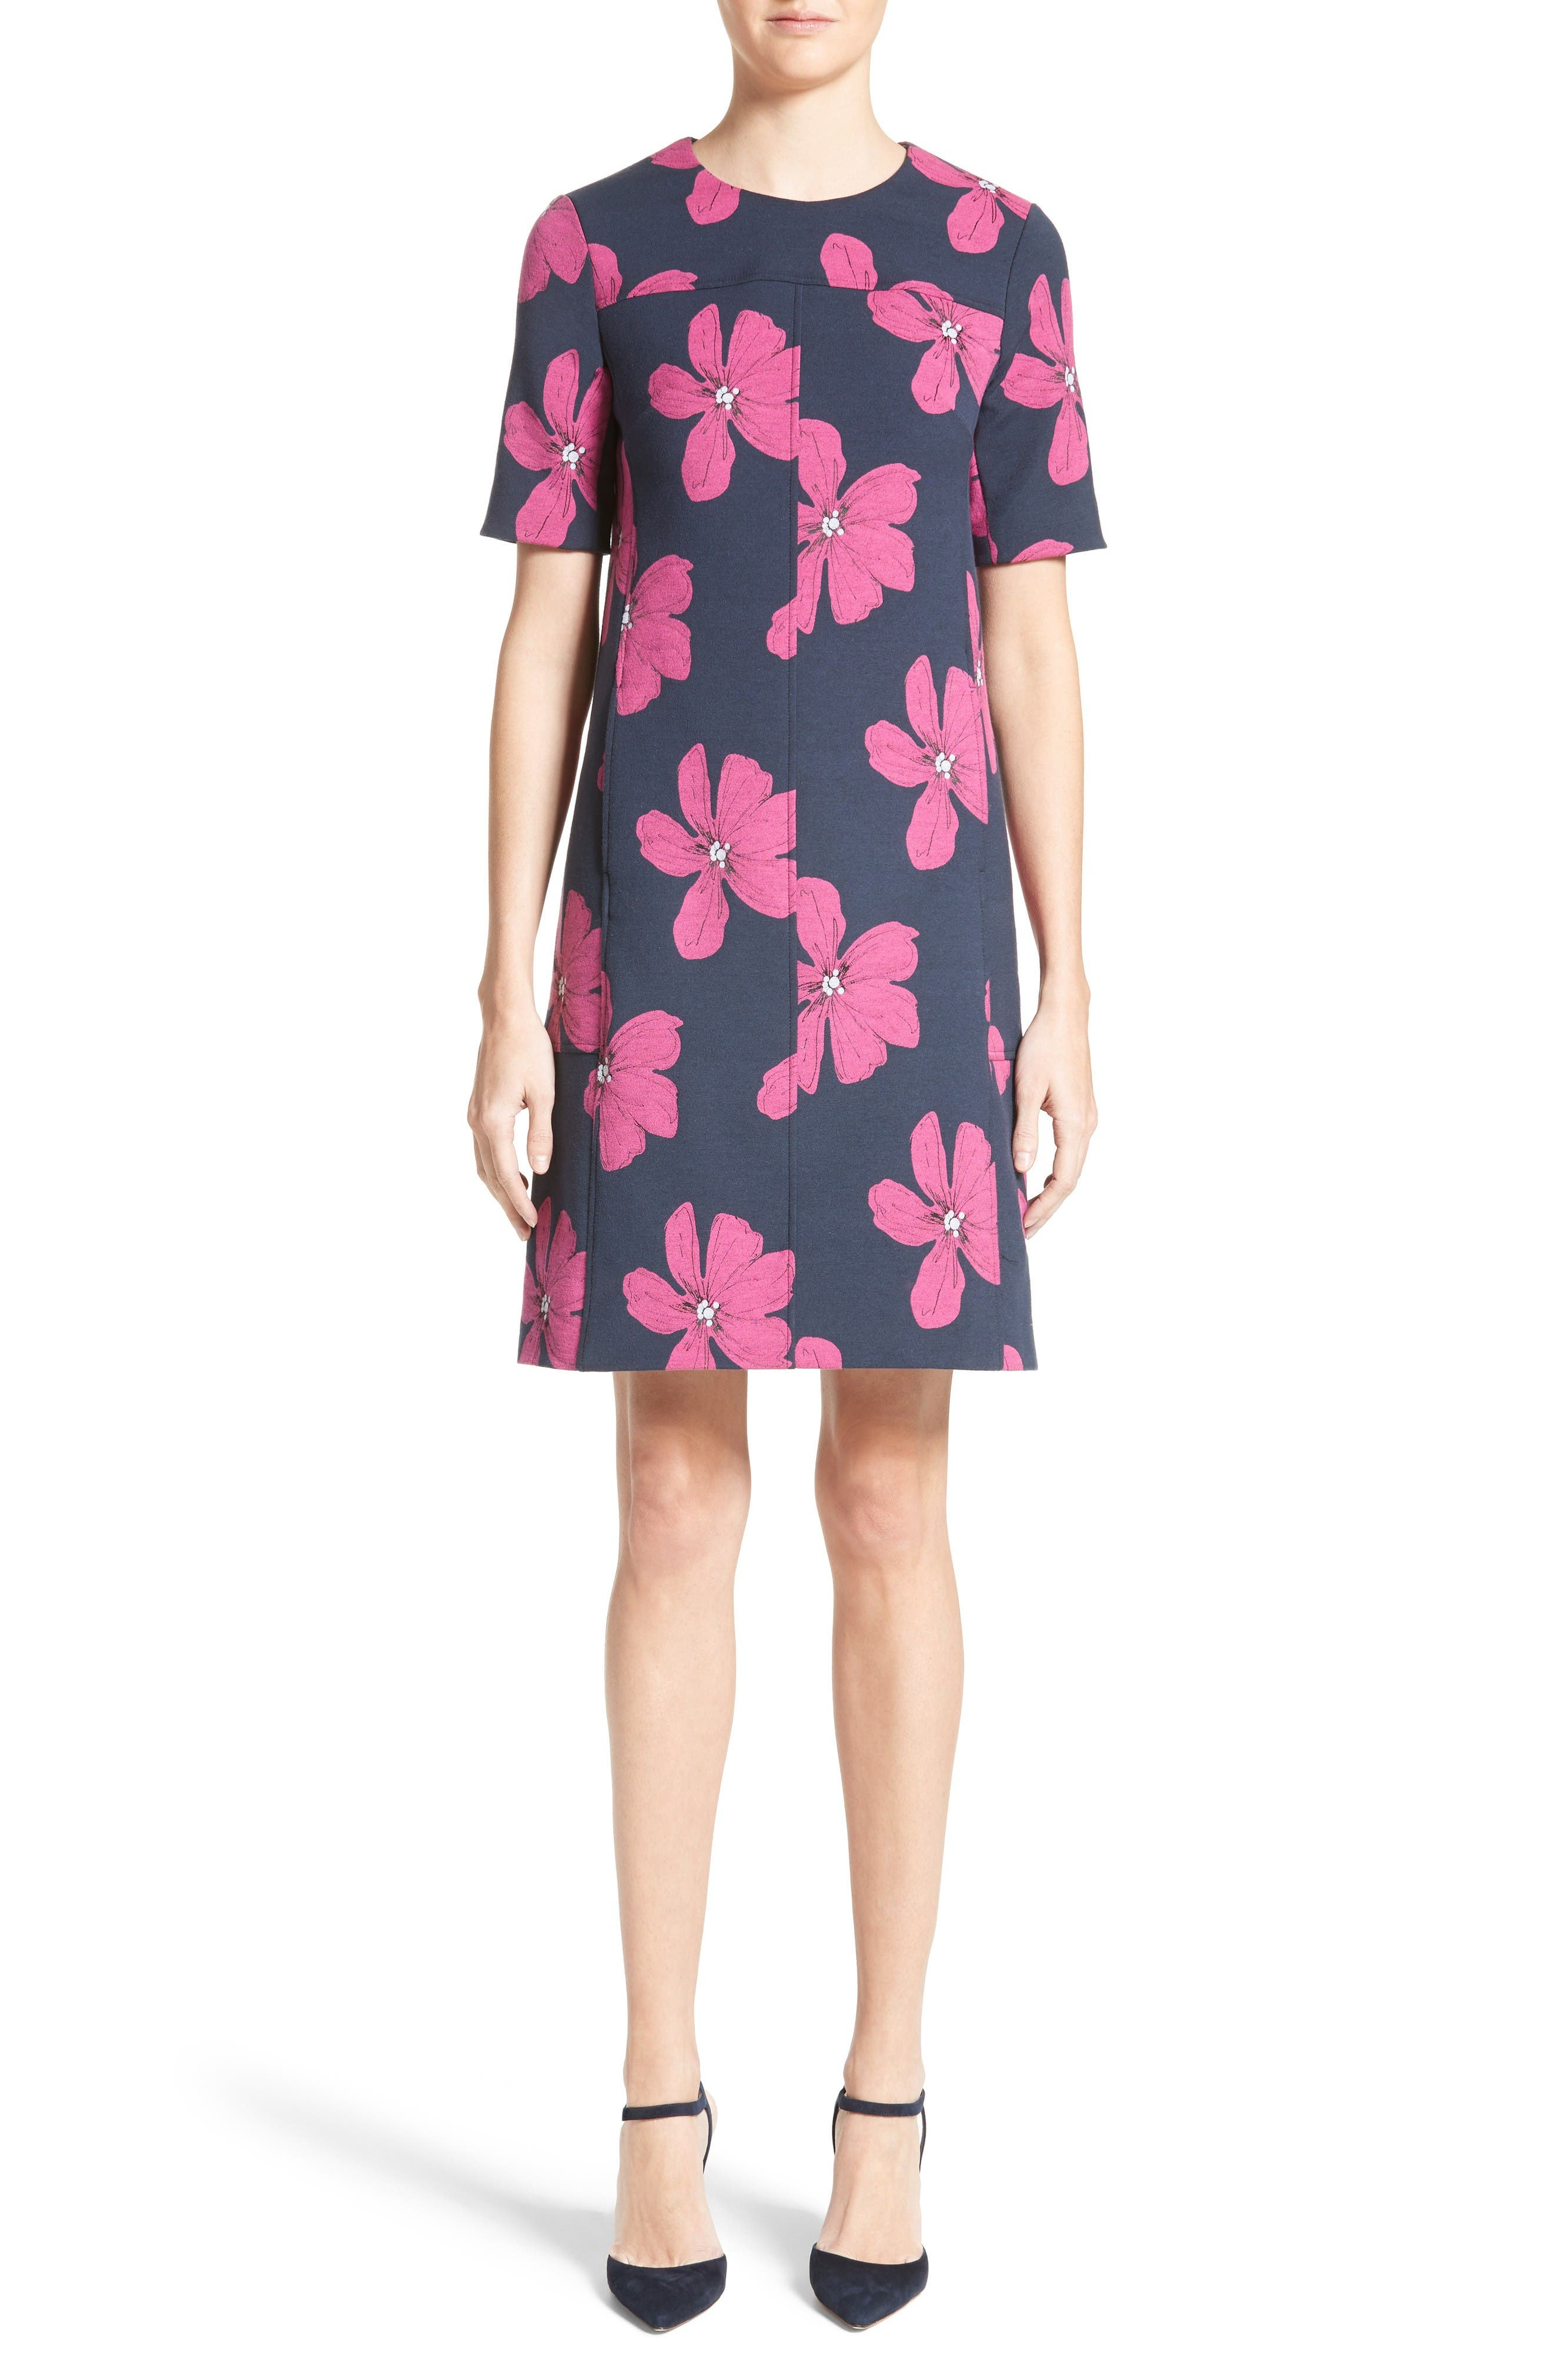 LELA ROSE Floral Print Stretch Jacquard Tunic Dress